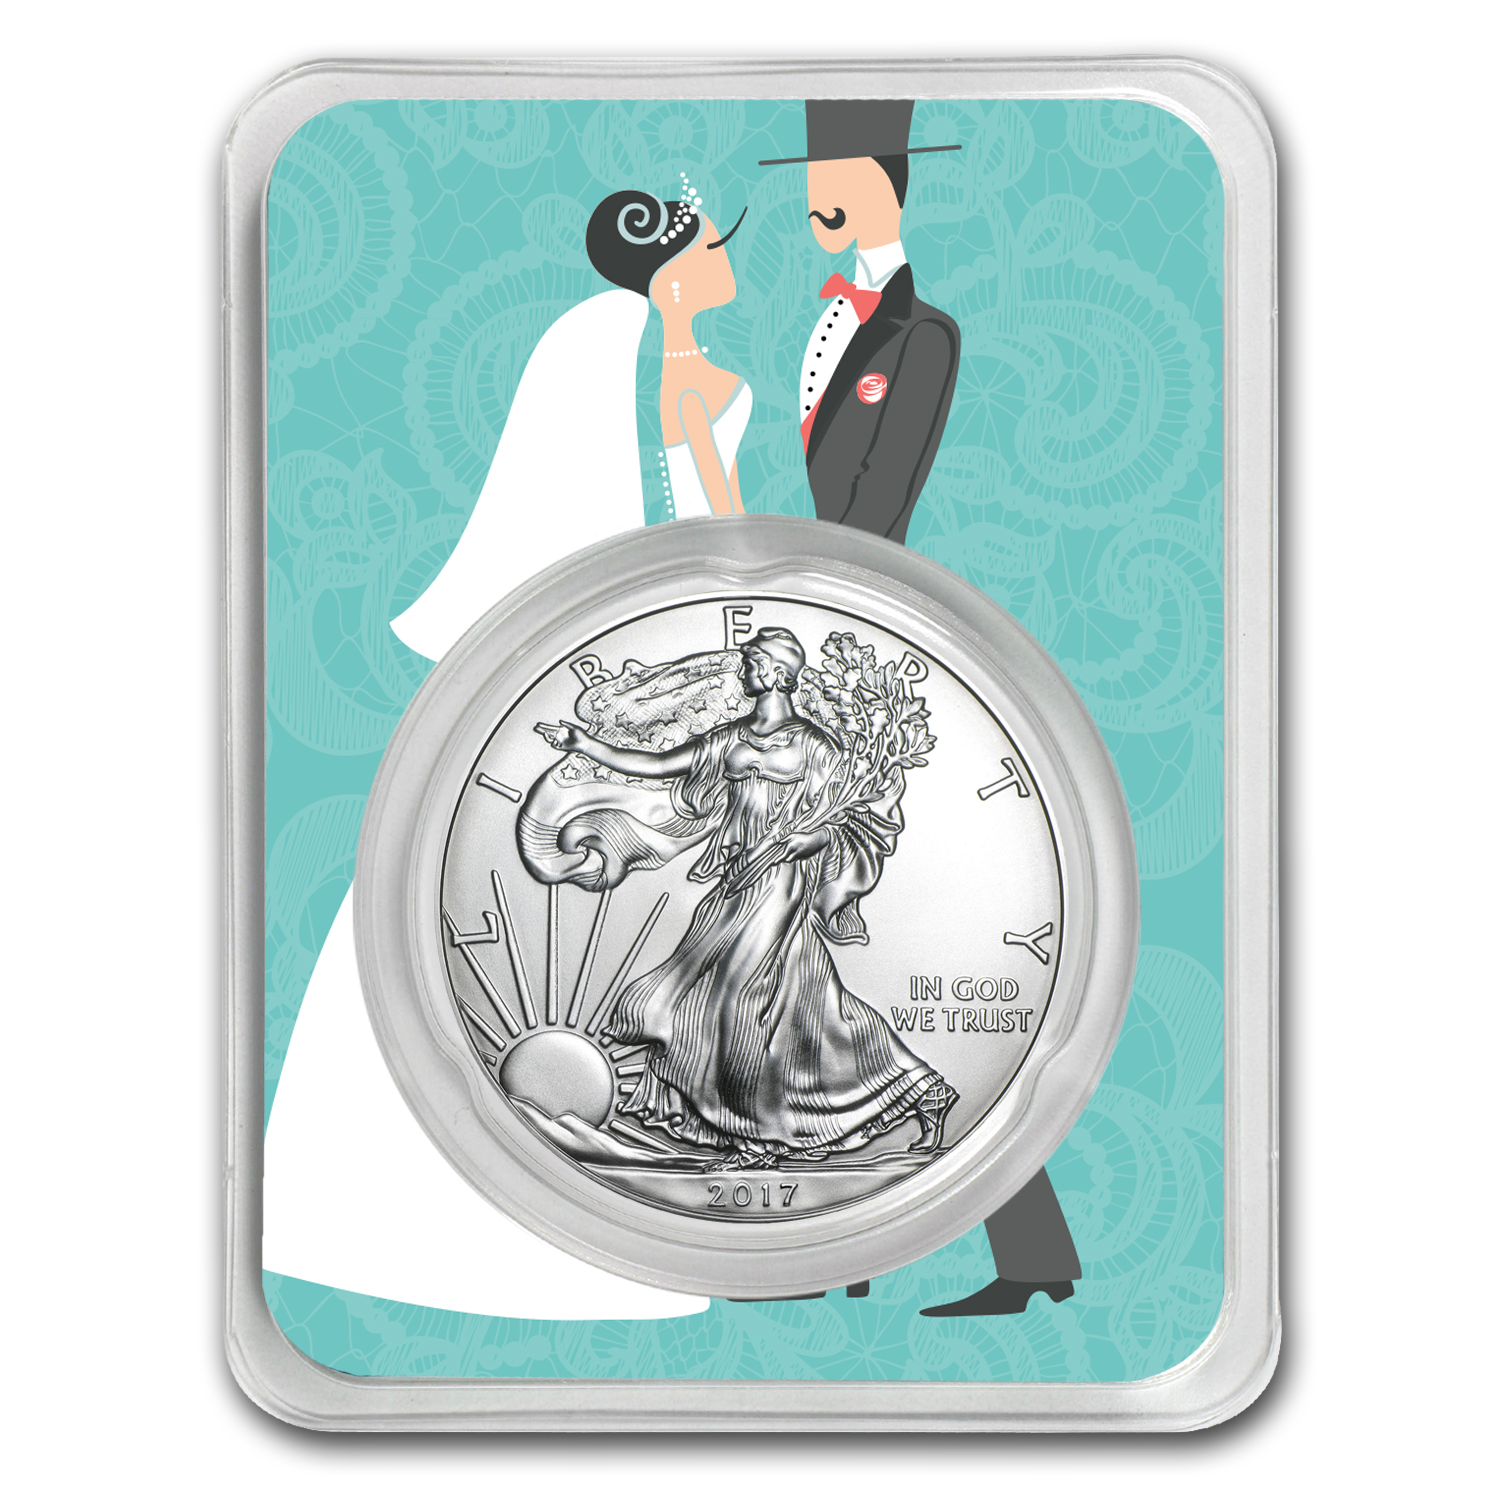 2017 1 oz Silver American Eagle - Just Married Couple